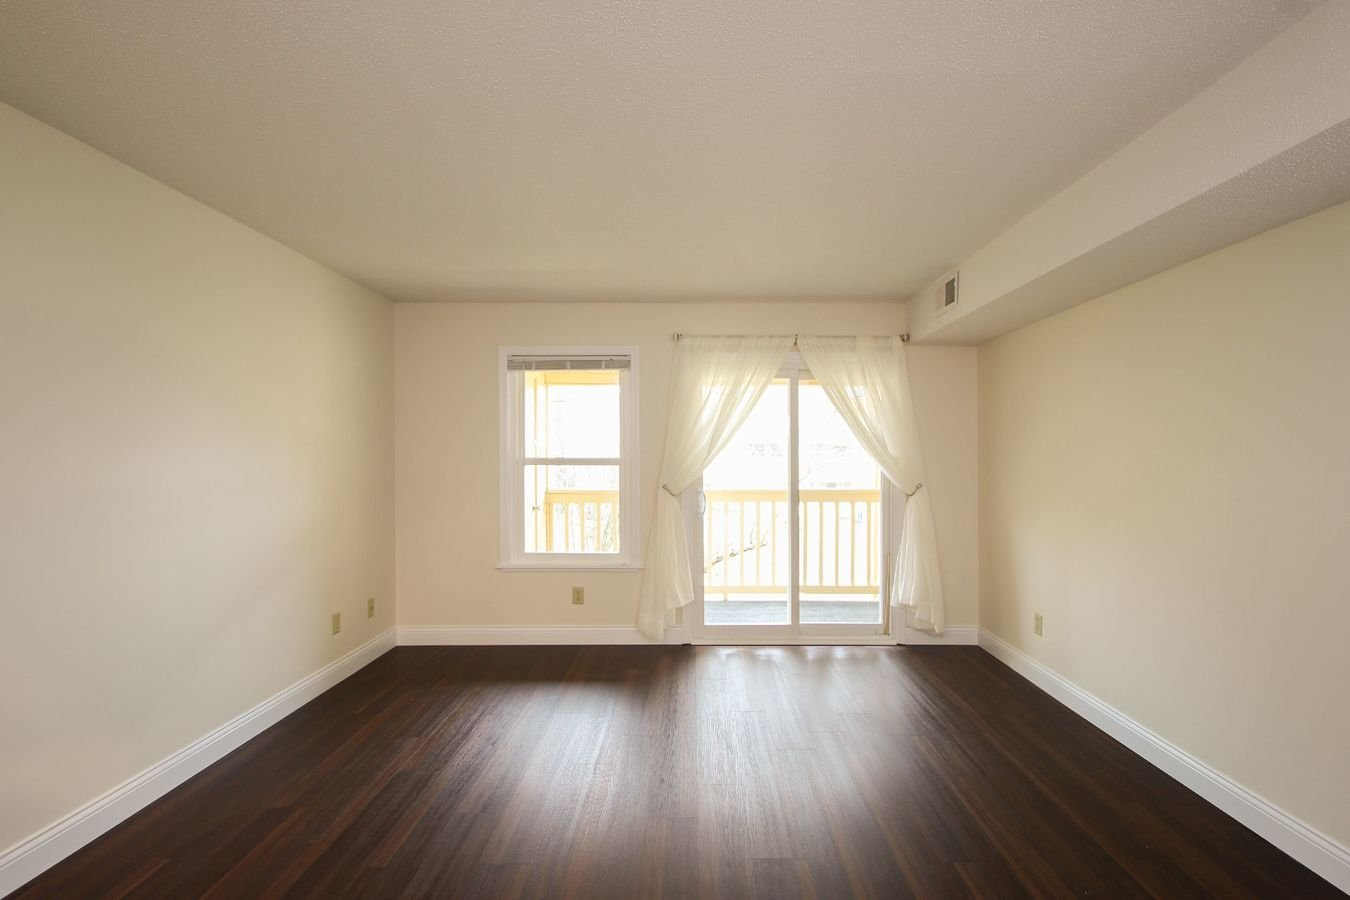 2 Bedrooms 2 Bathrooms Apartment for rent at Covenanter Hill Neighborhood District in Bloomington, IN